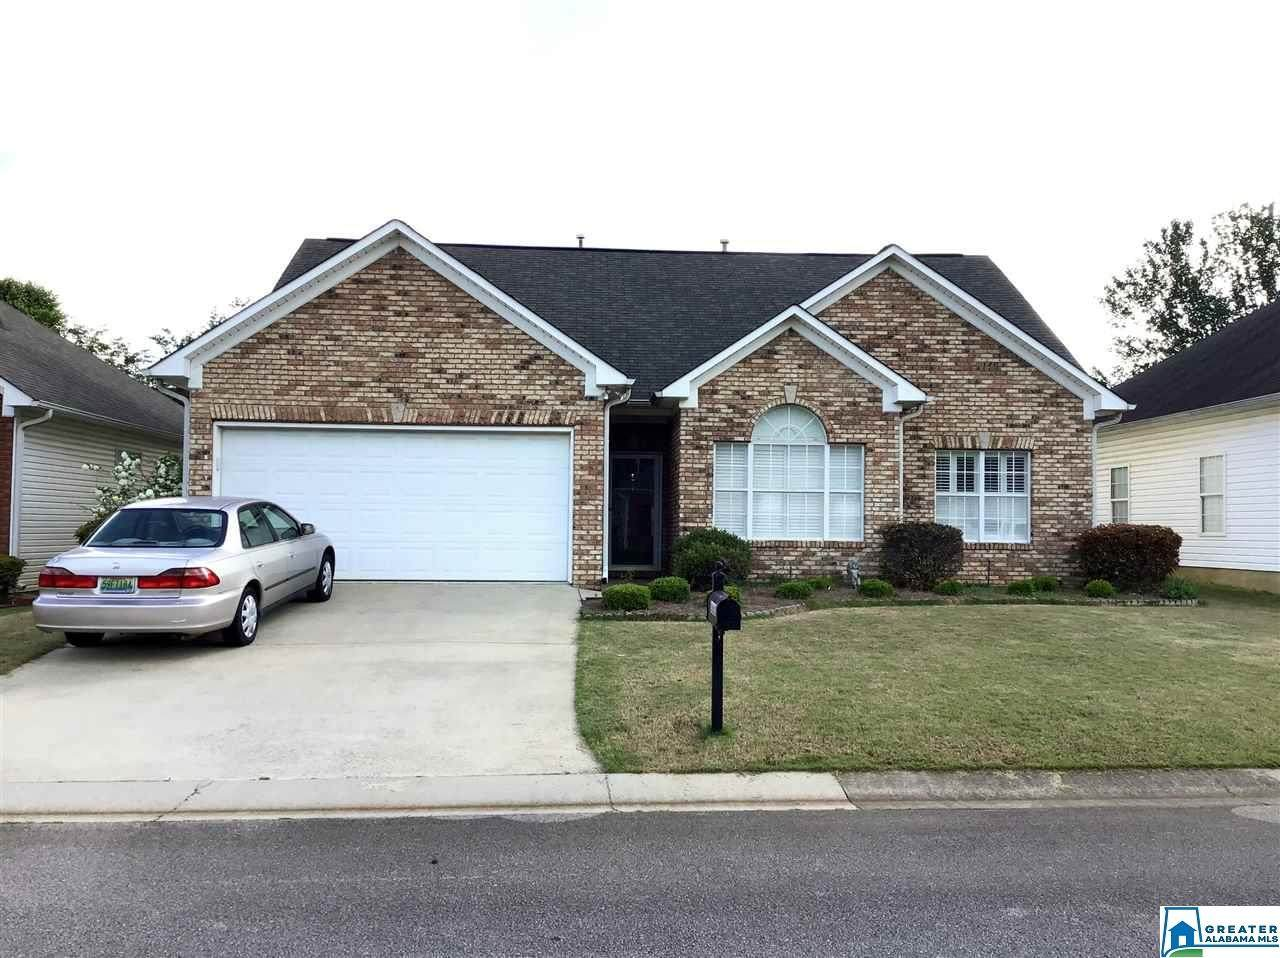 8680 Cedar Springs Cir - Photo 1